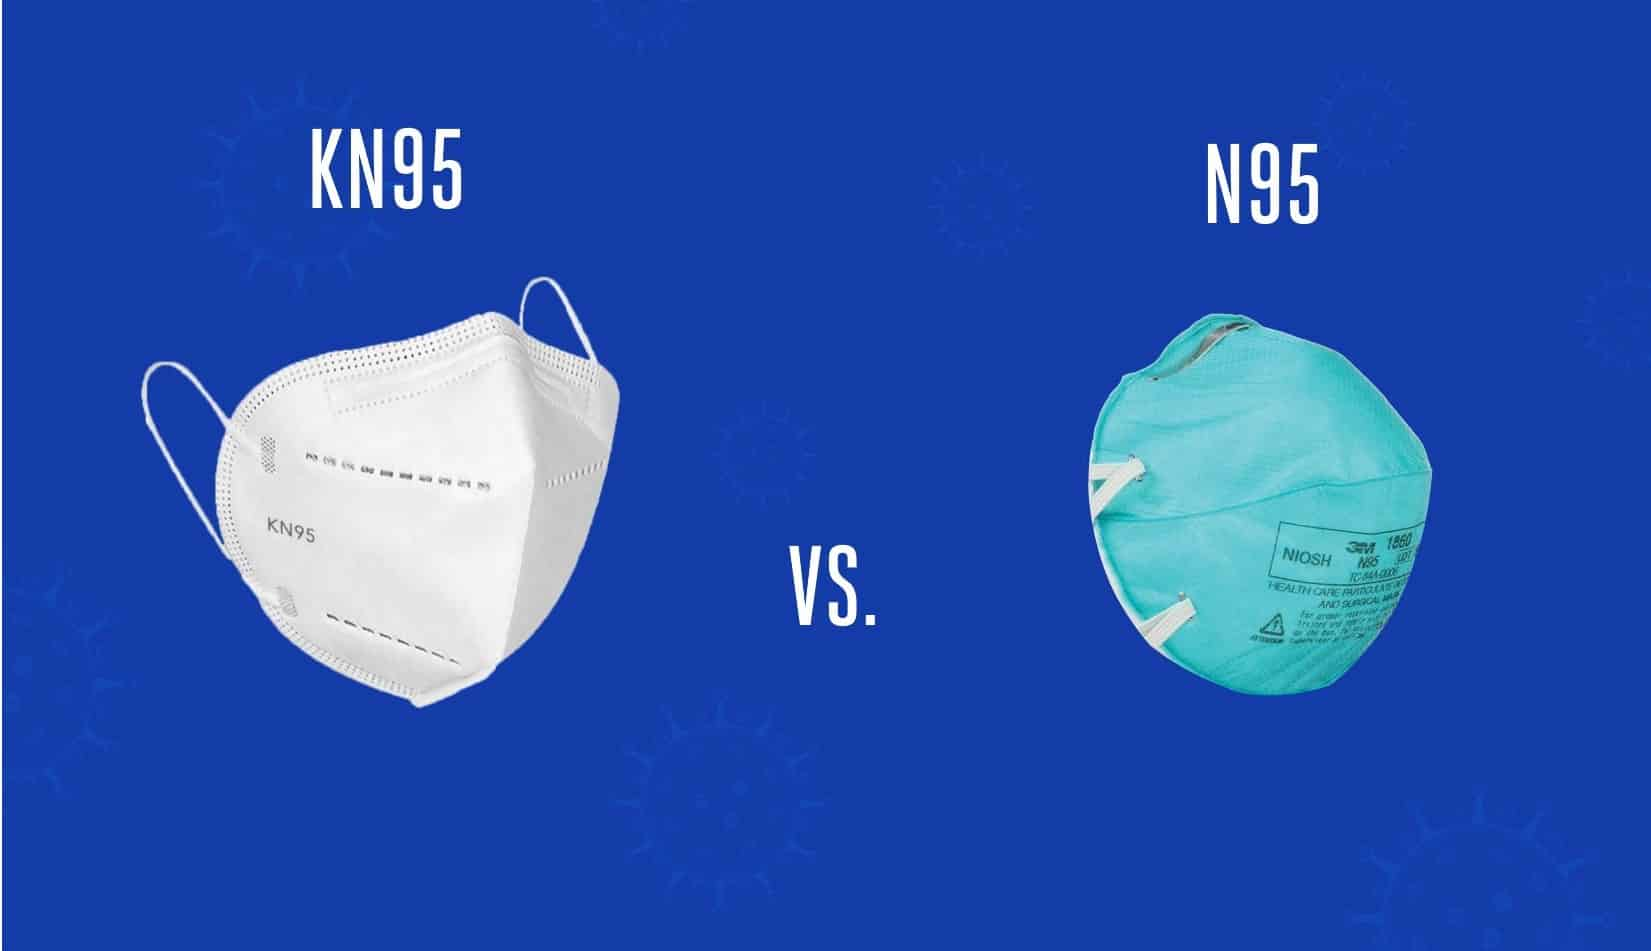 KN95 or N95 1860 – What's the difference?